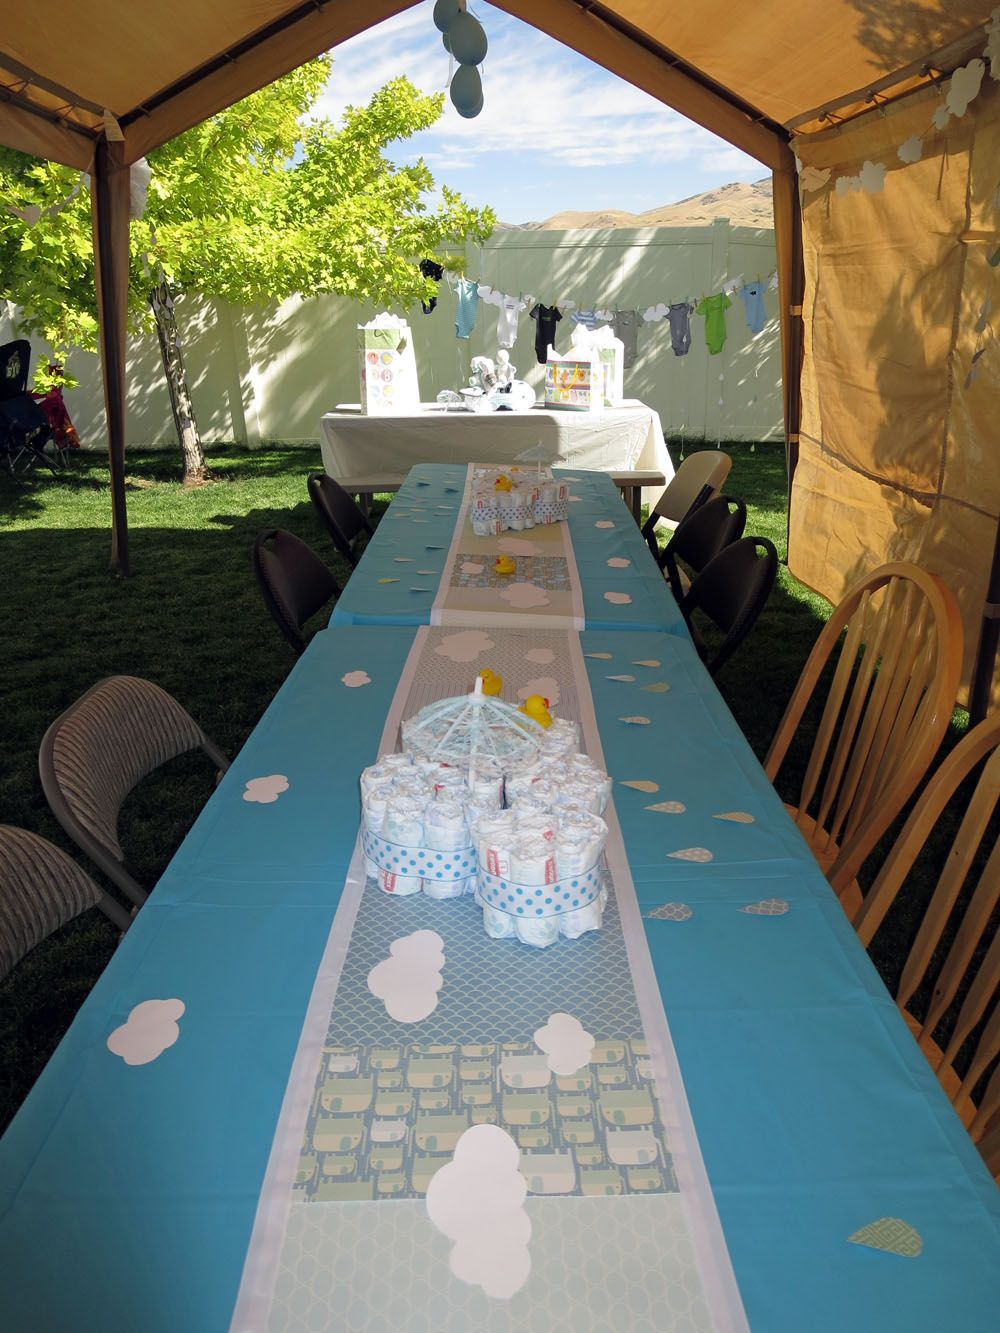 Rainy day boy baby shower outdoor tent set up Baby Shower